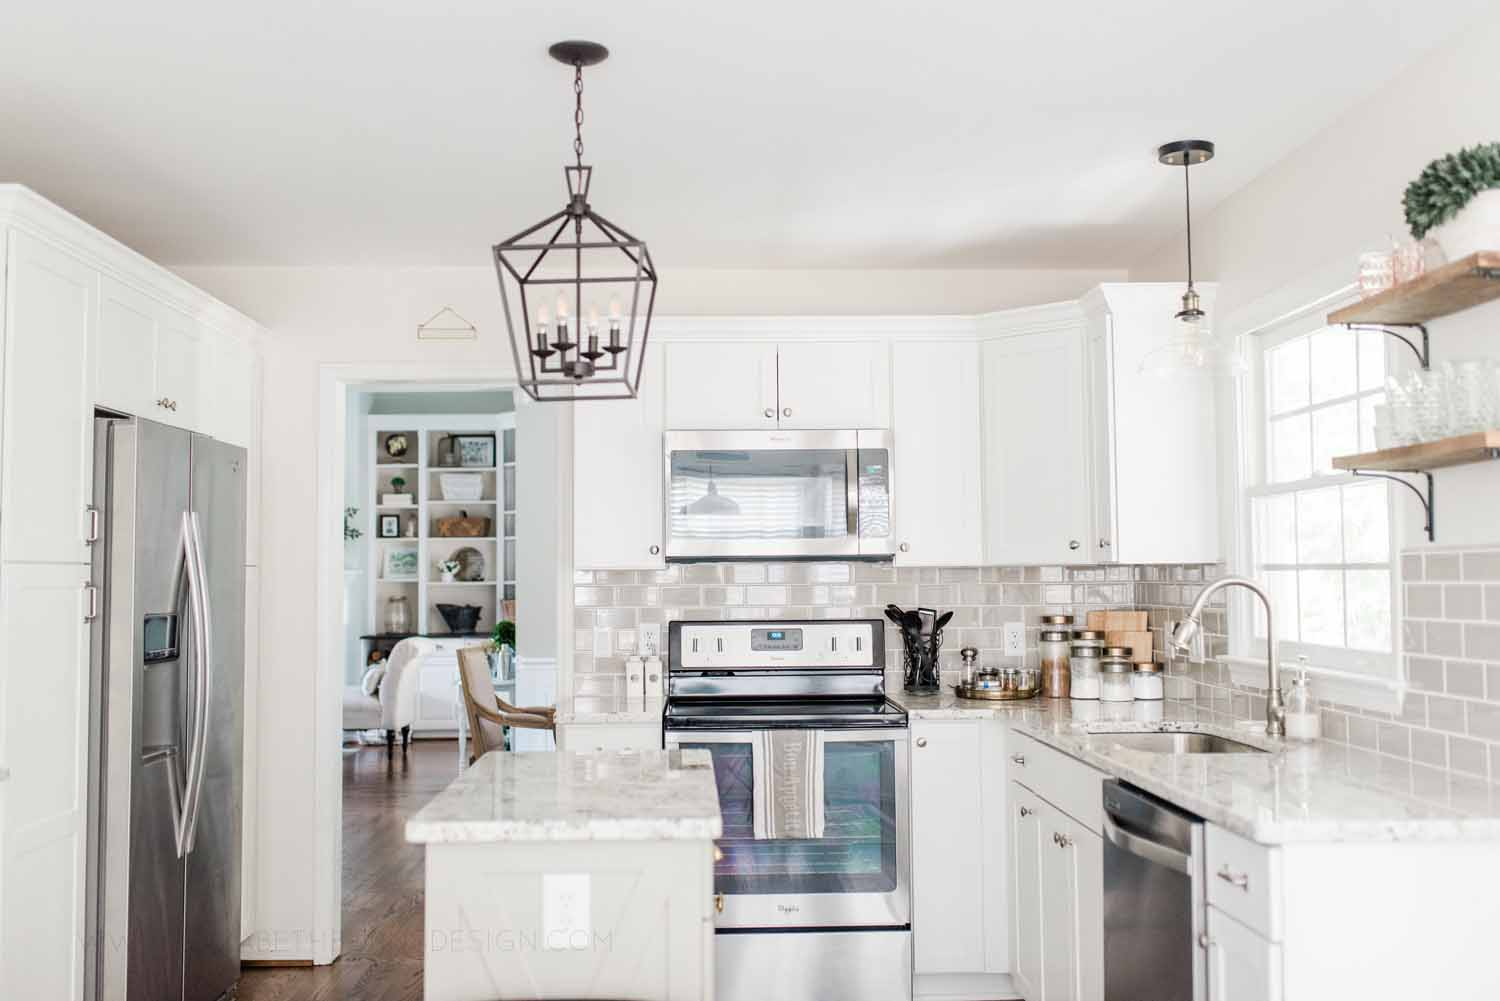 Elizabeth Burns Design Raleigh Interior Designer 1990s house remodel before and after Benjamin Moore Classic Gray 1548 Arcadia White Shaker Cabinets Gray Subway Tile Backsplash (13).jpg